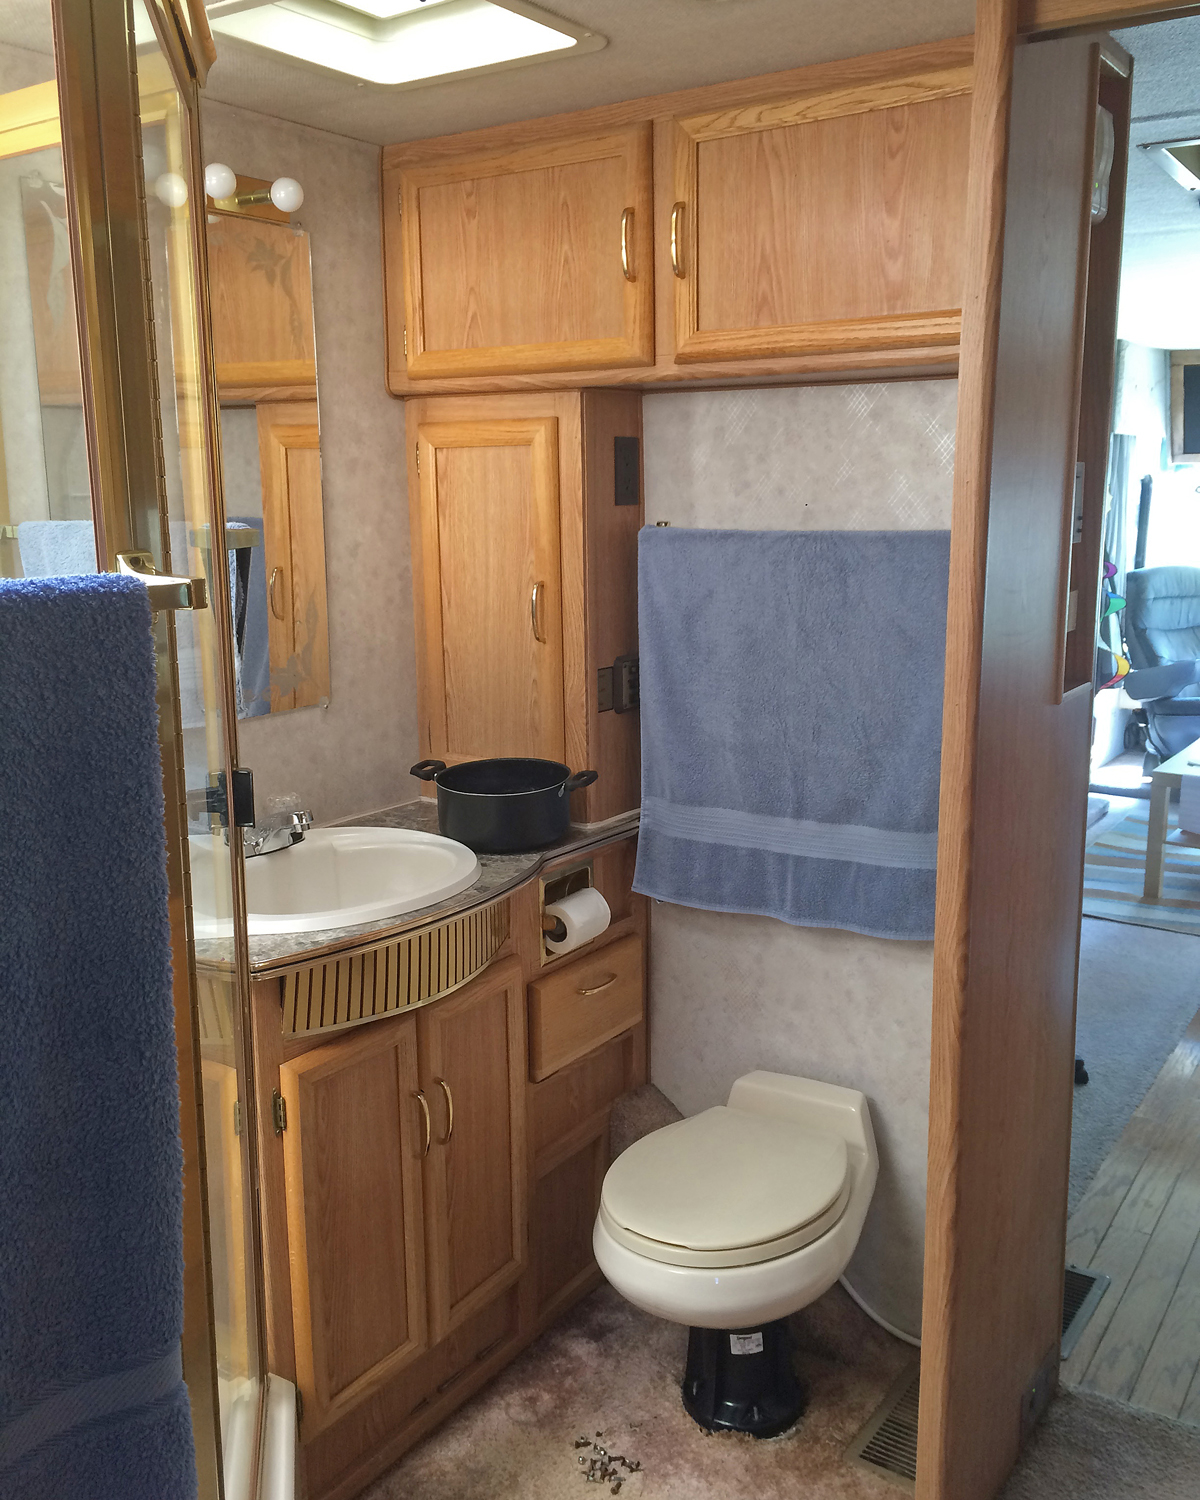 What happened next rv renovation the bathroom edition for Bathroom cabinet renovation ideas